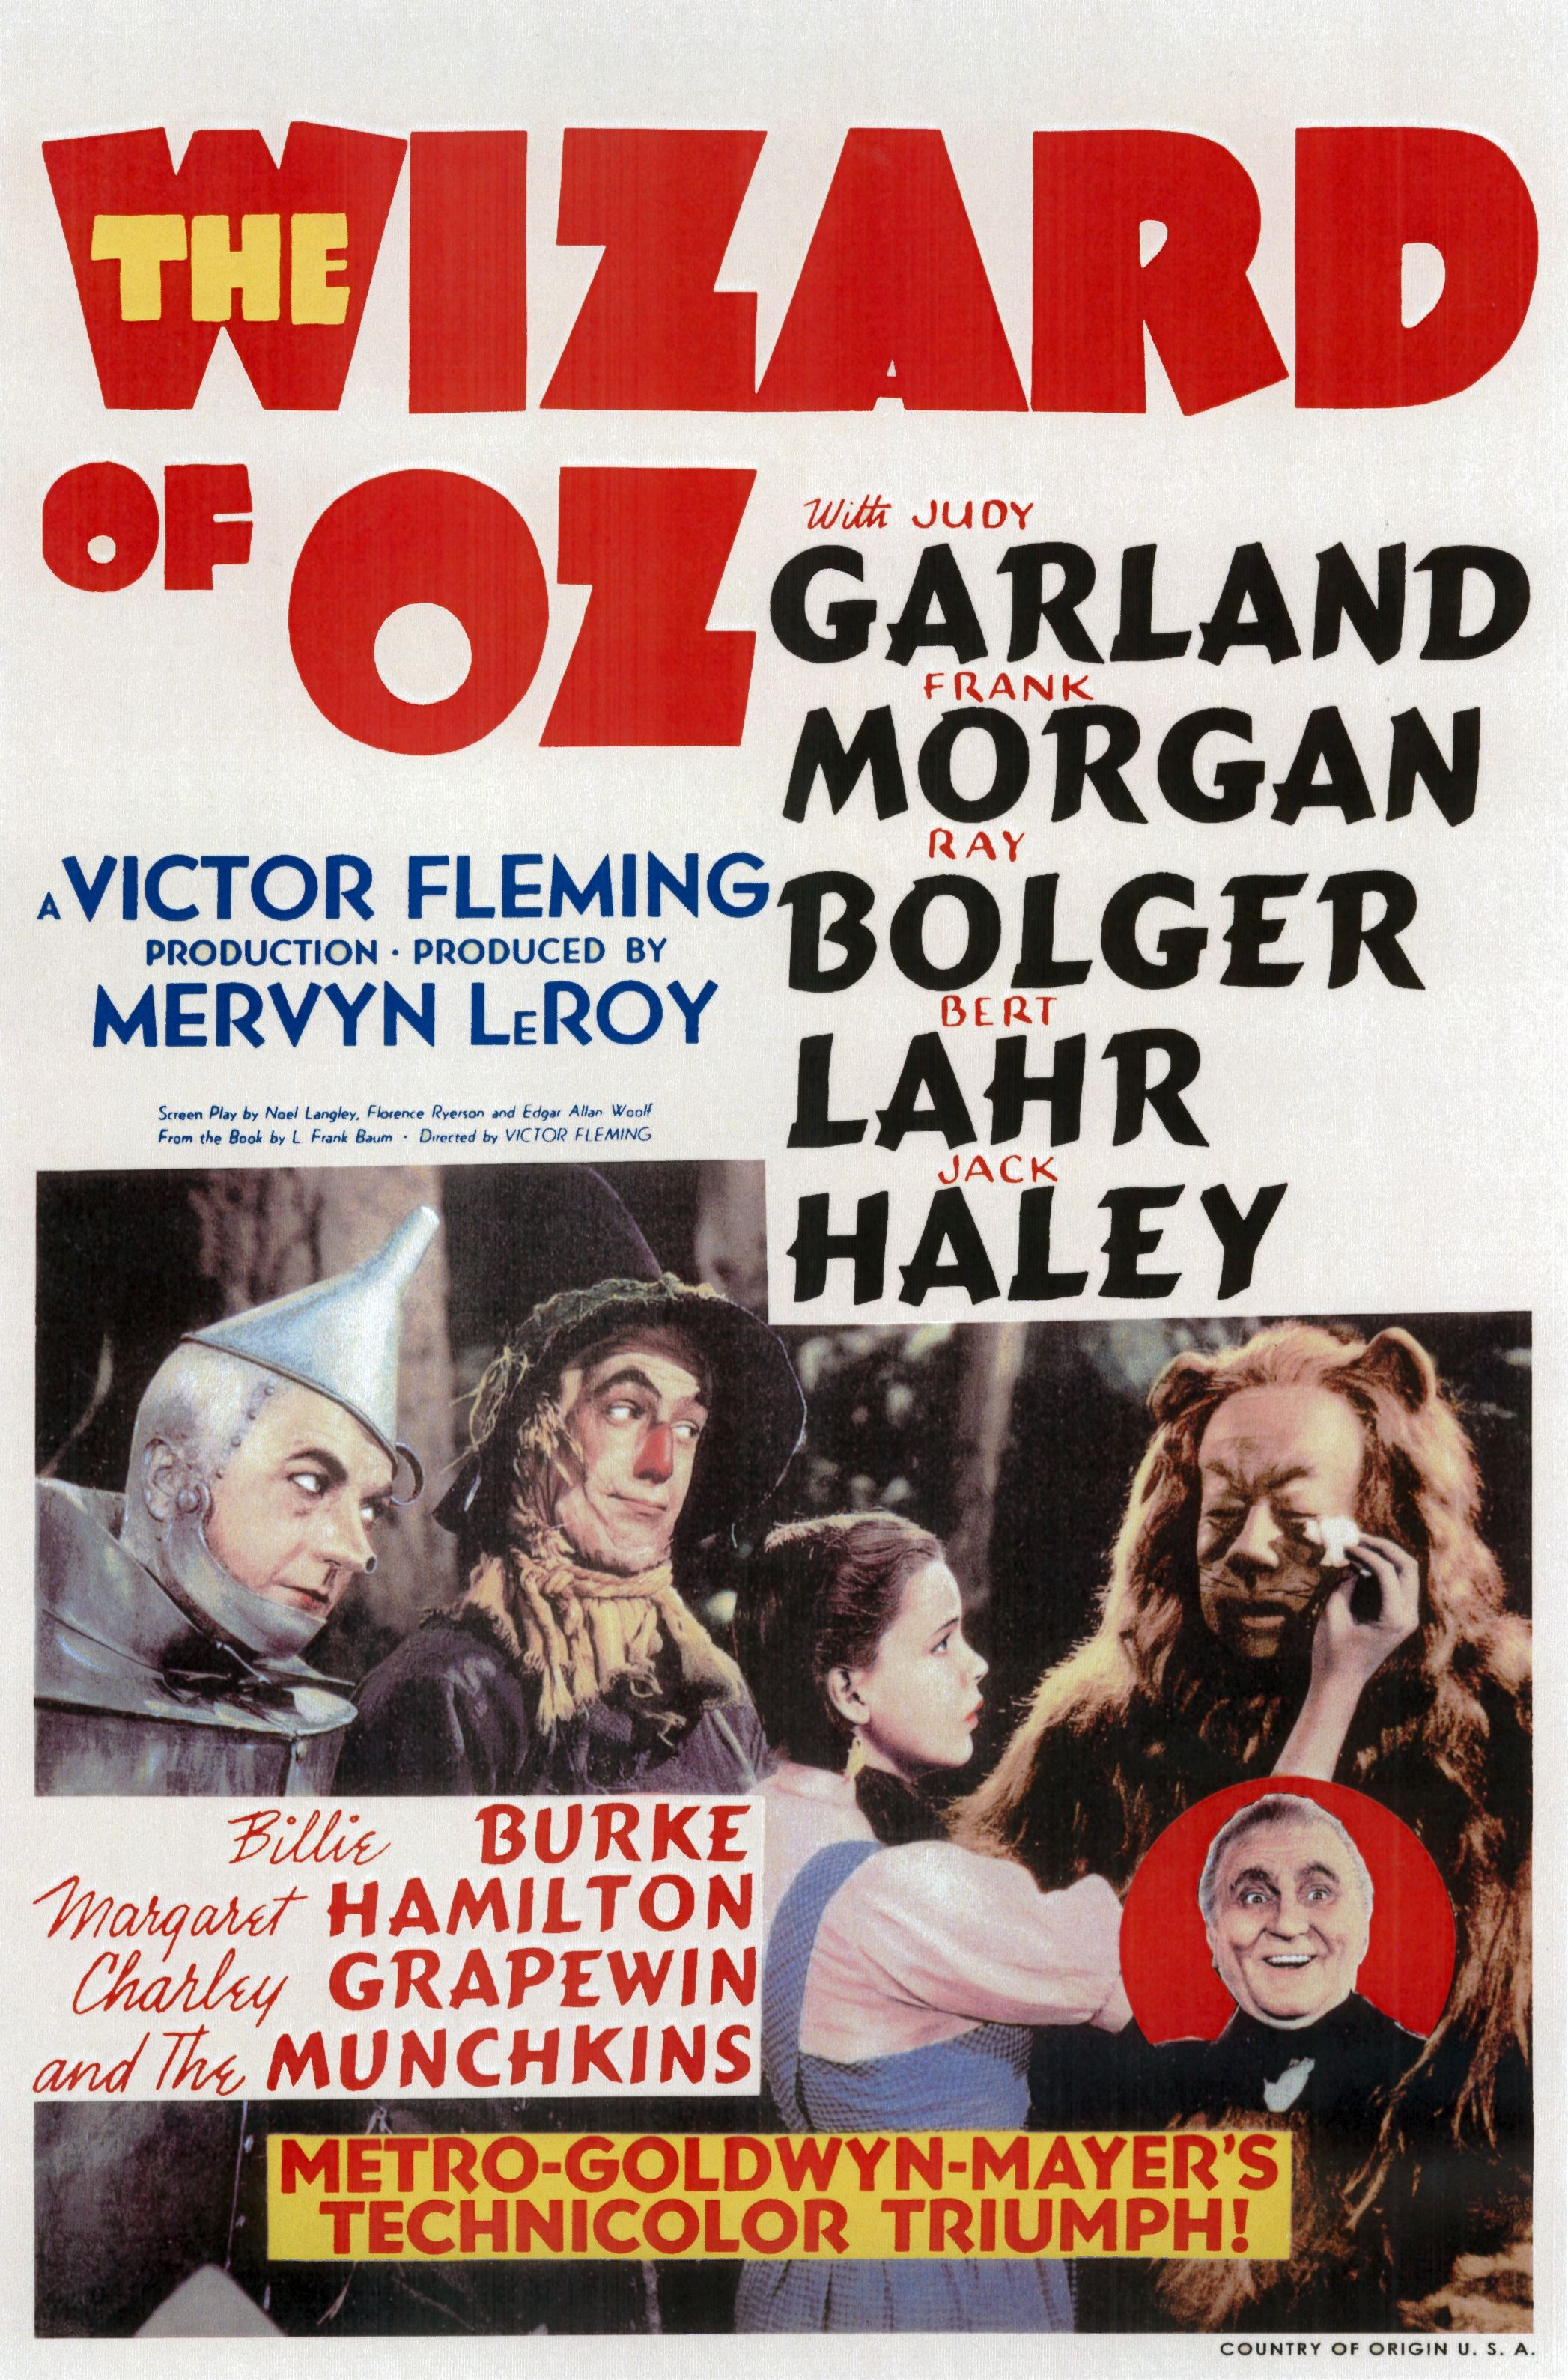 http://upload.wikimedia.org/wikipedia/commons/c/ca/WIZARD_OF_OZ_ORIGINAL_POSTER_1939.jpg